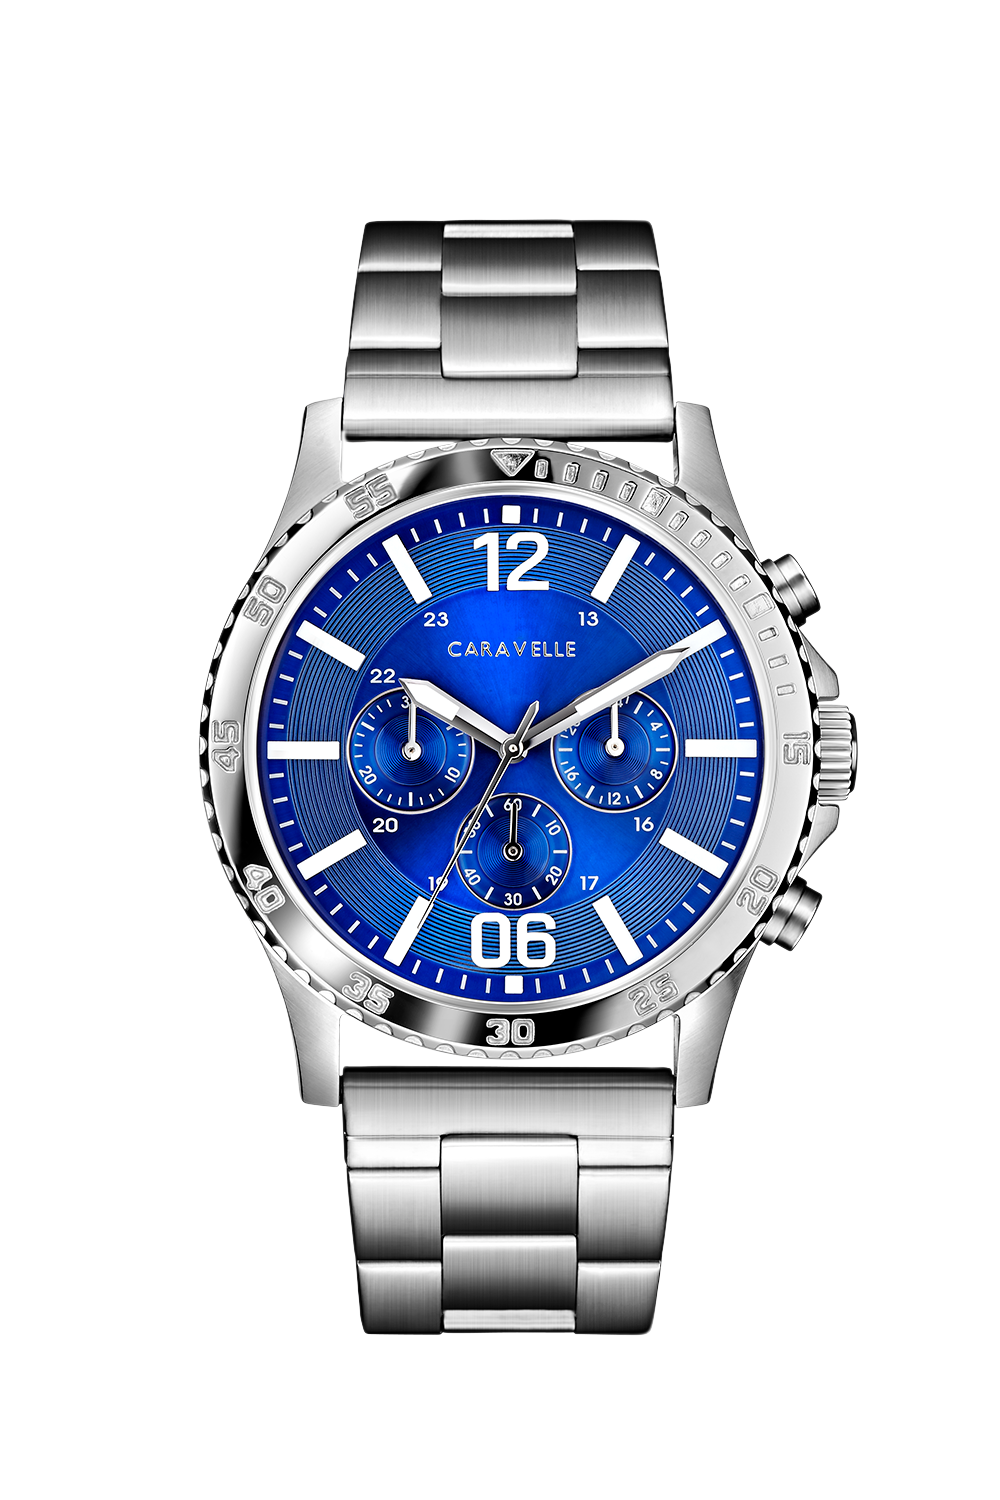 Men's Chrono Blue (43A145) - Design by Jesse